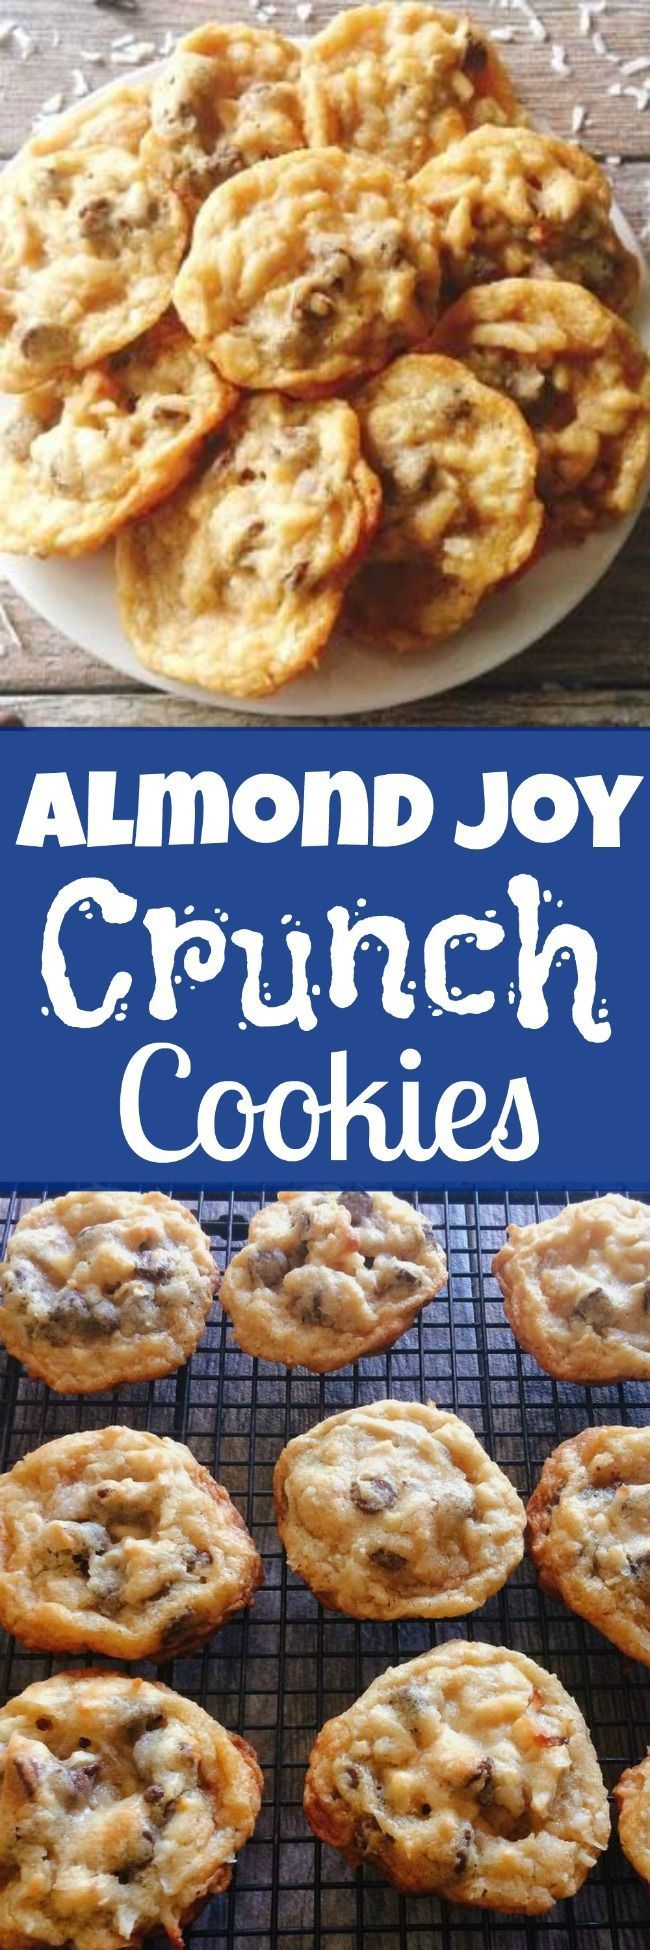 Delicious and easy Almond Joy Crunch Cookies are like a chocolate chip cookie loaded with chocolate chips, coconut and almonds. Dip them in melted chocolate and you definitely have a winner!